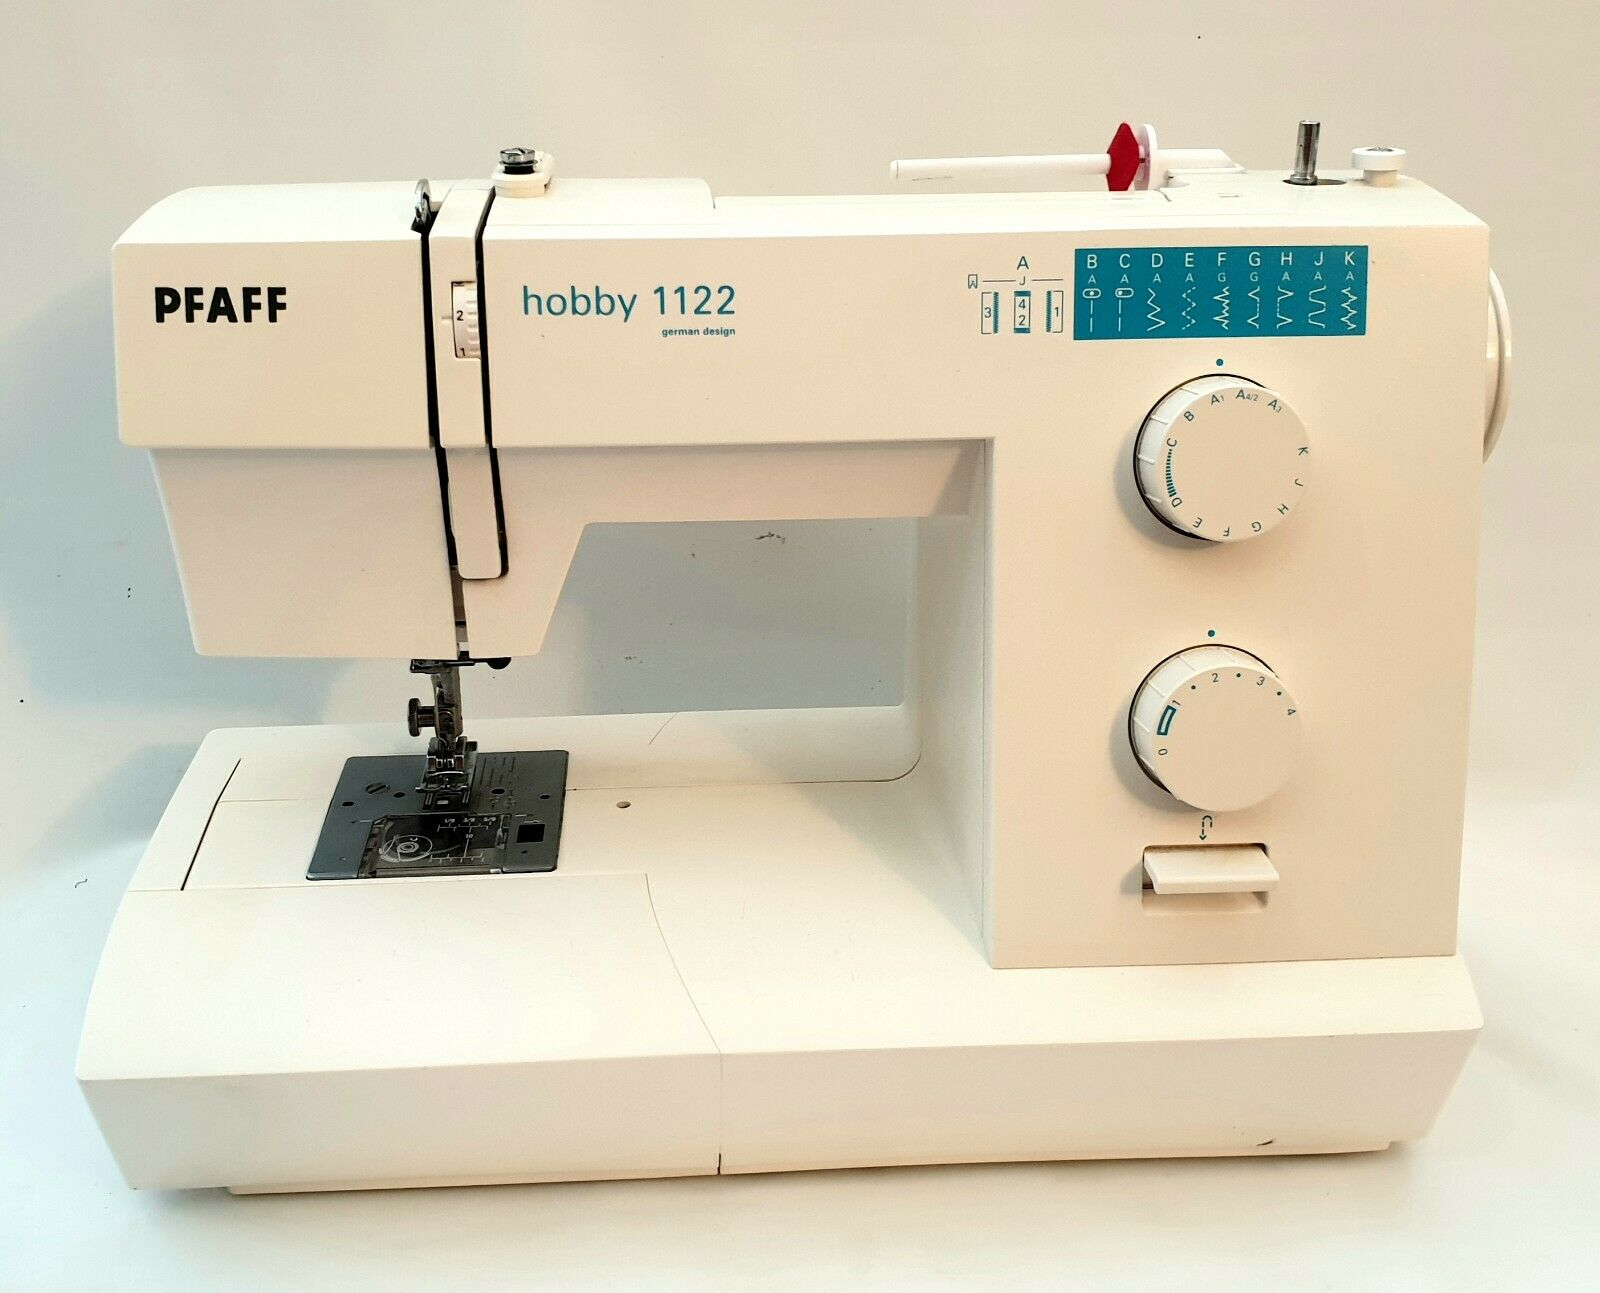 10 PFAFF SEWING MACHINE BOBBINS AND 5 NEEDLES 80//12 SEE MAIN LISTING FOR MODELS